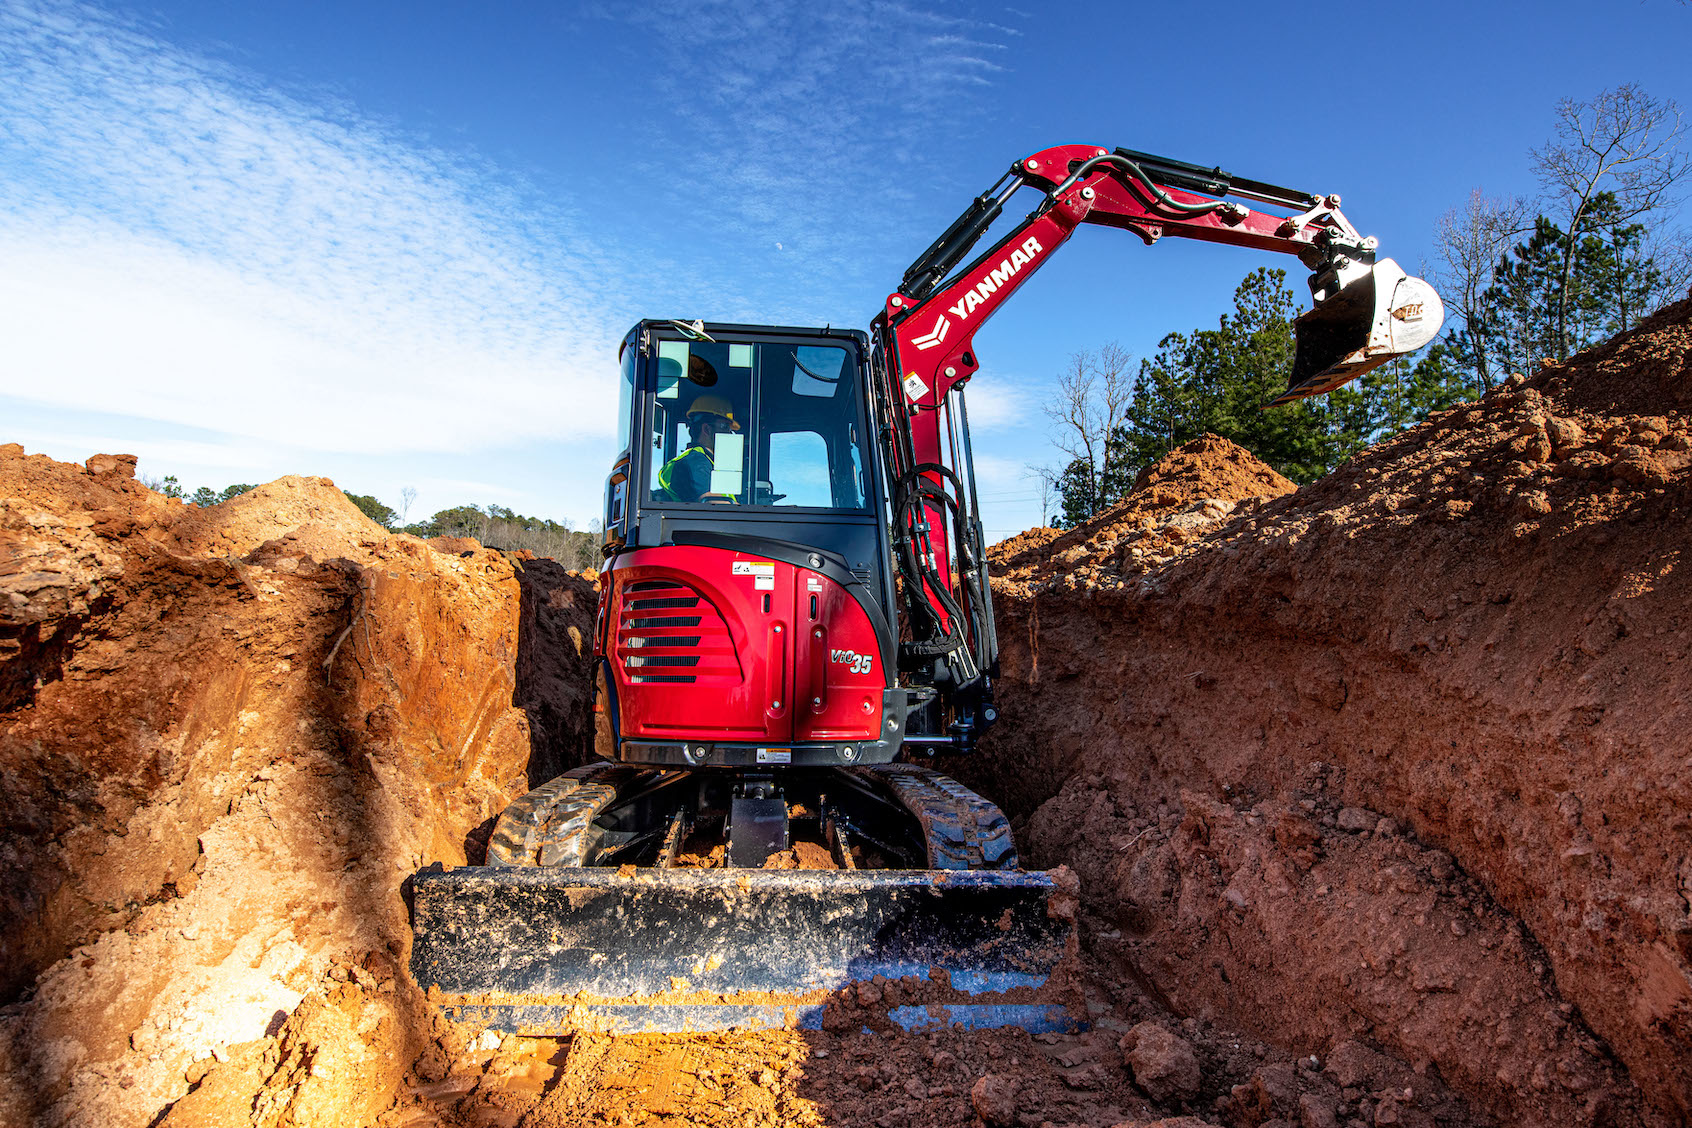 Yanmar ViO35-6A compact excavator in trench